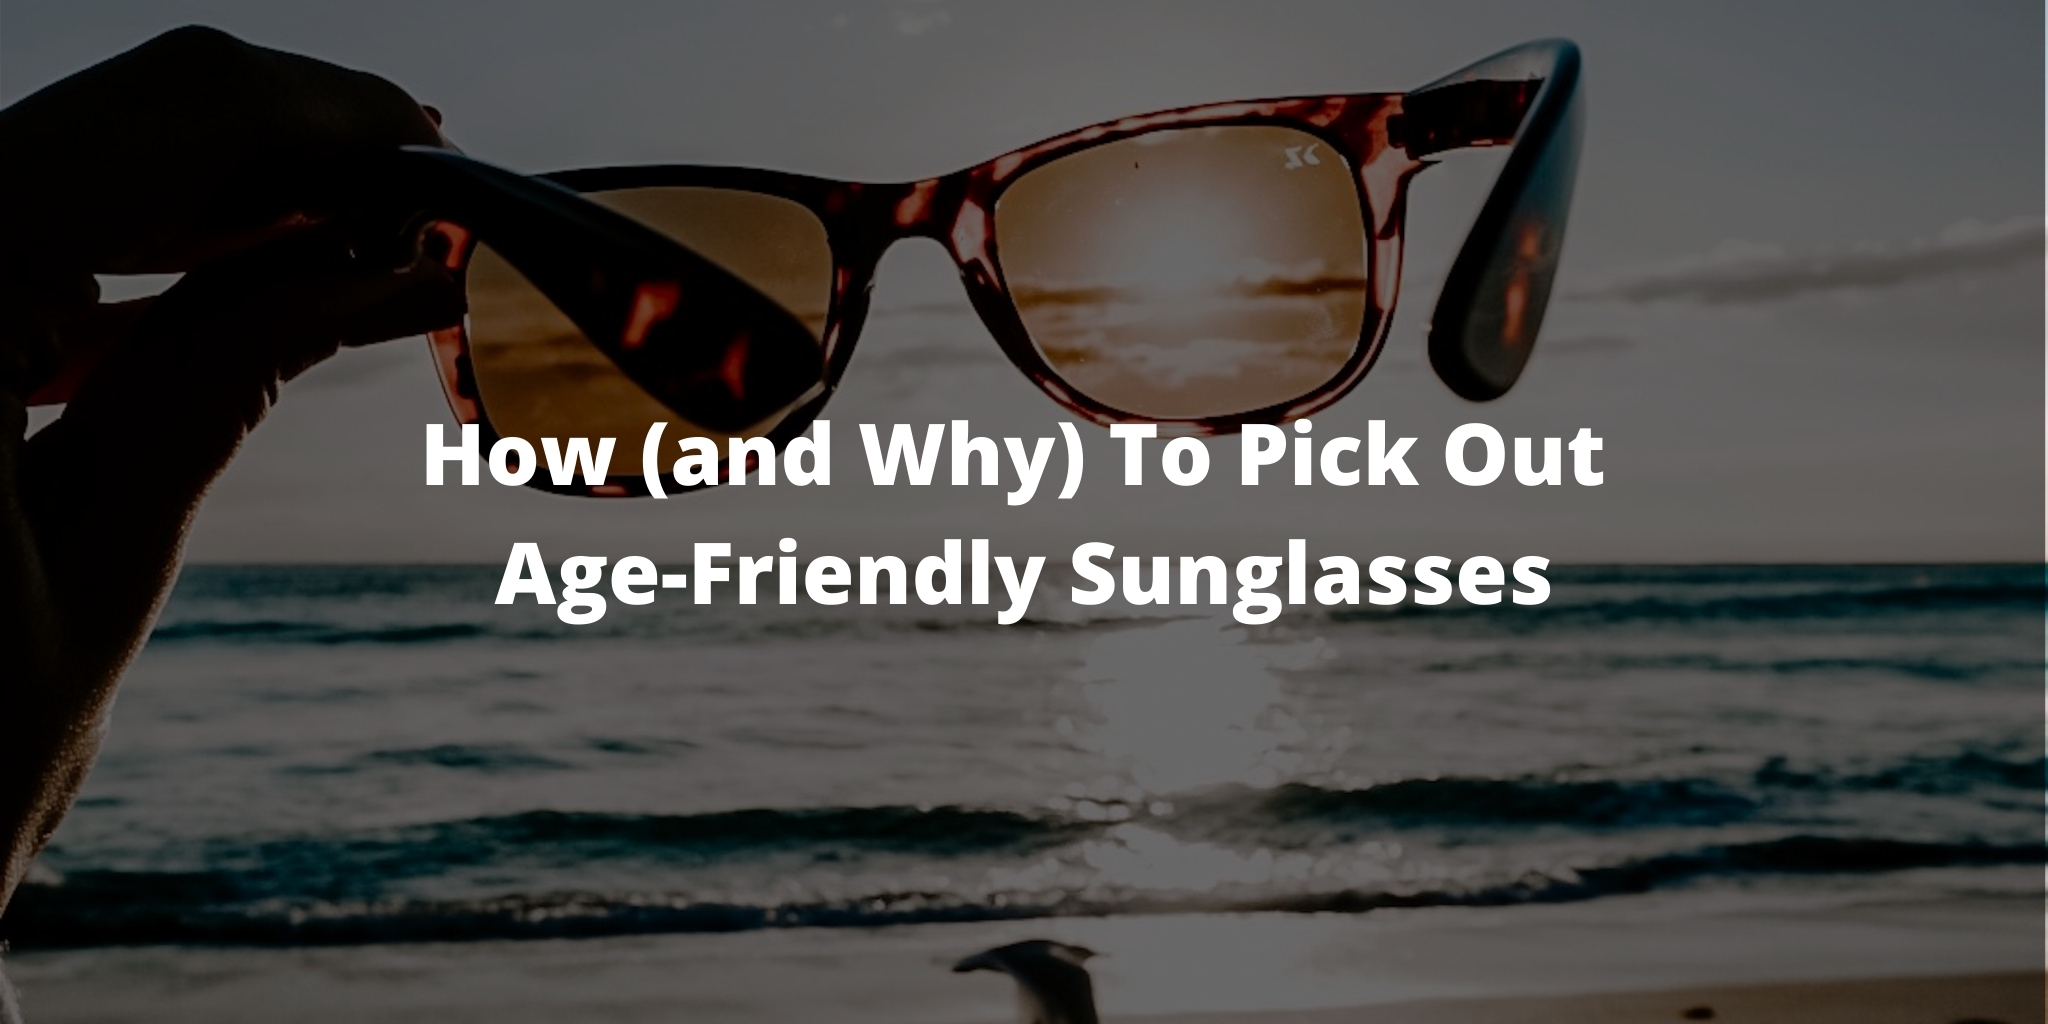 How (and Why) To Pick Out Age-Friendly Sunglasses